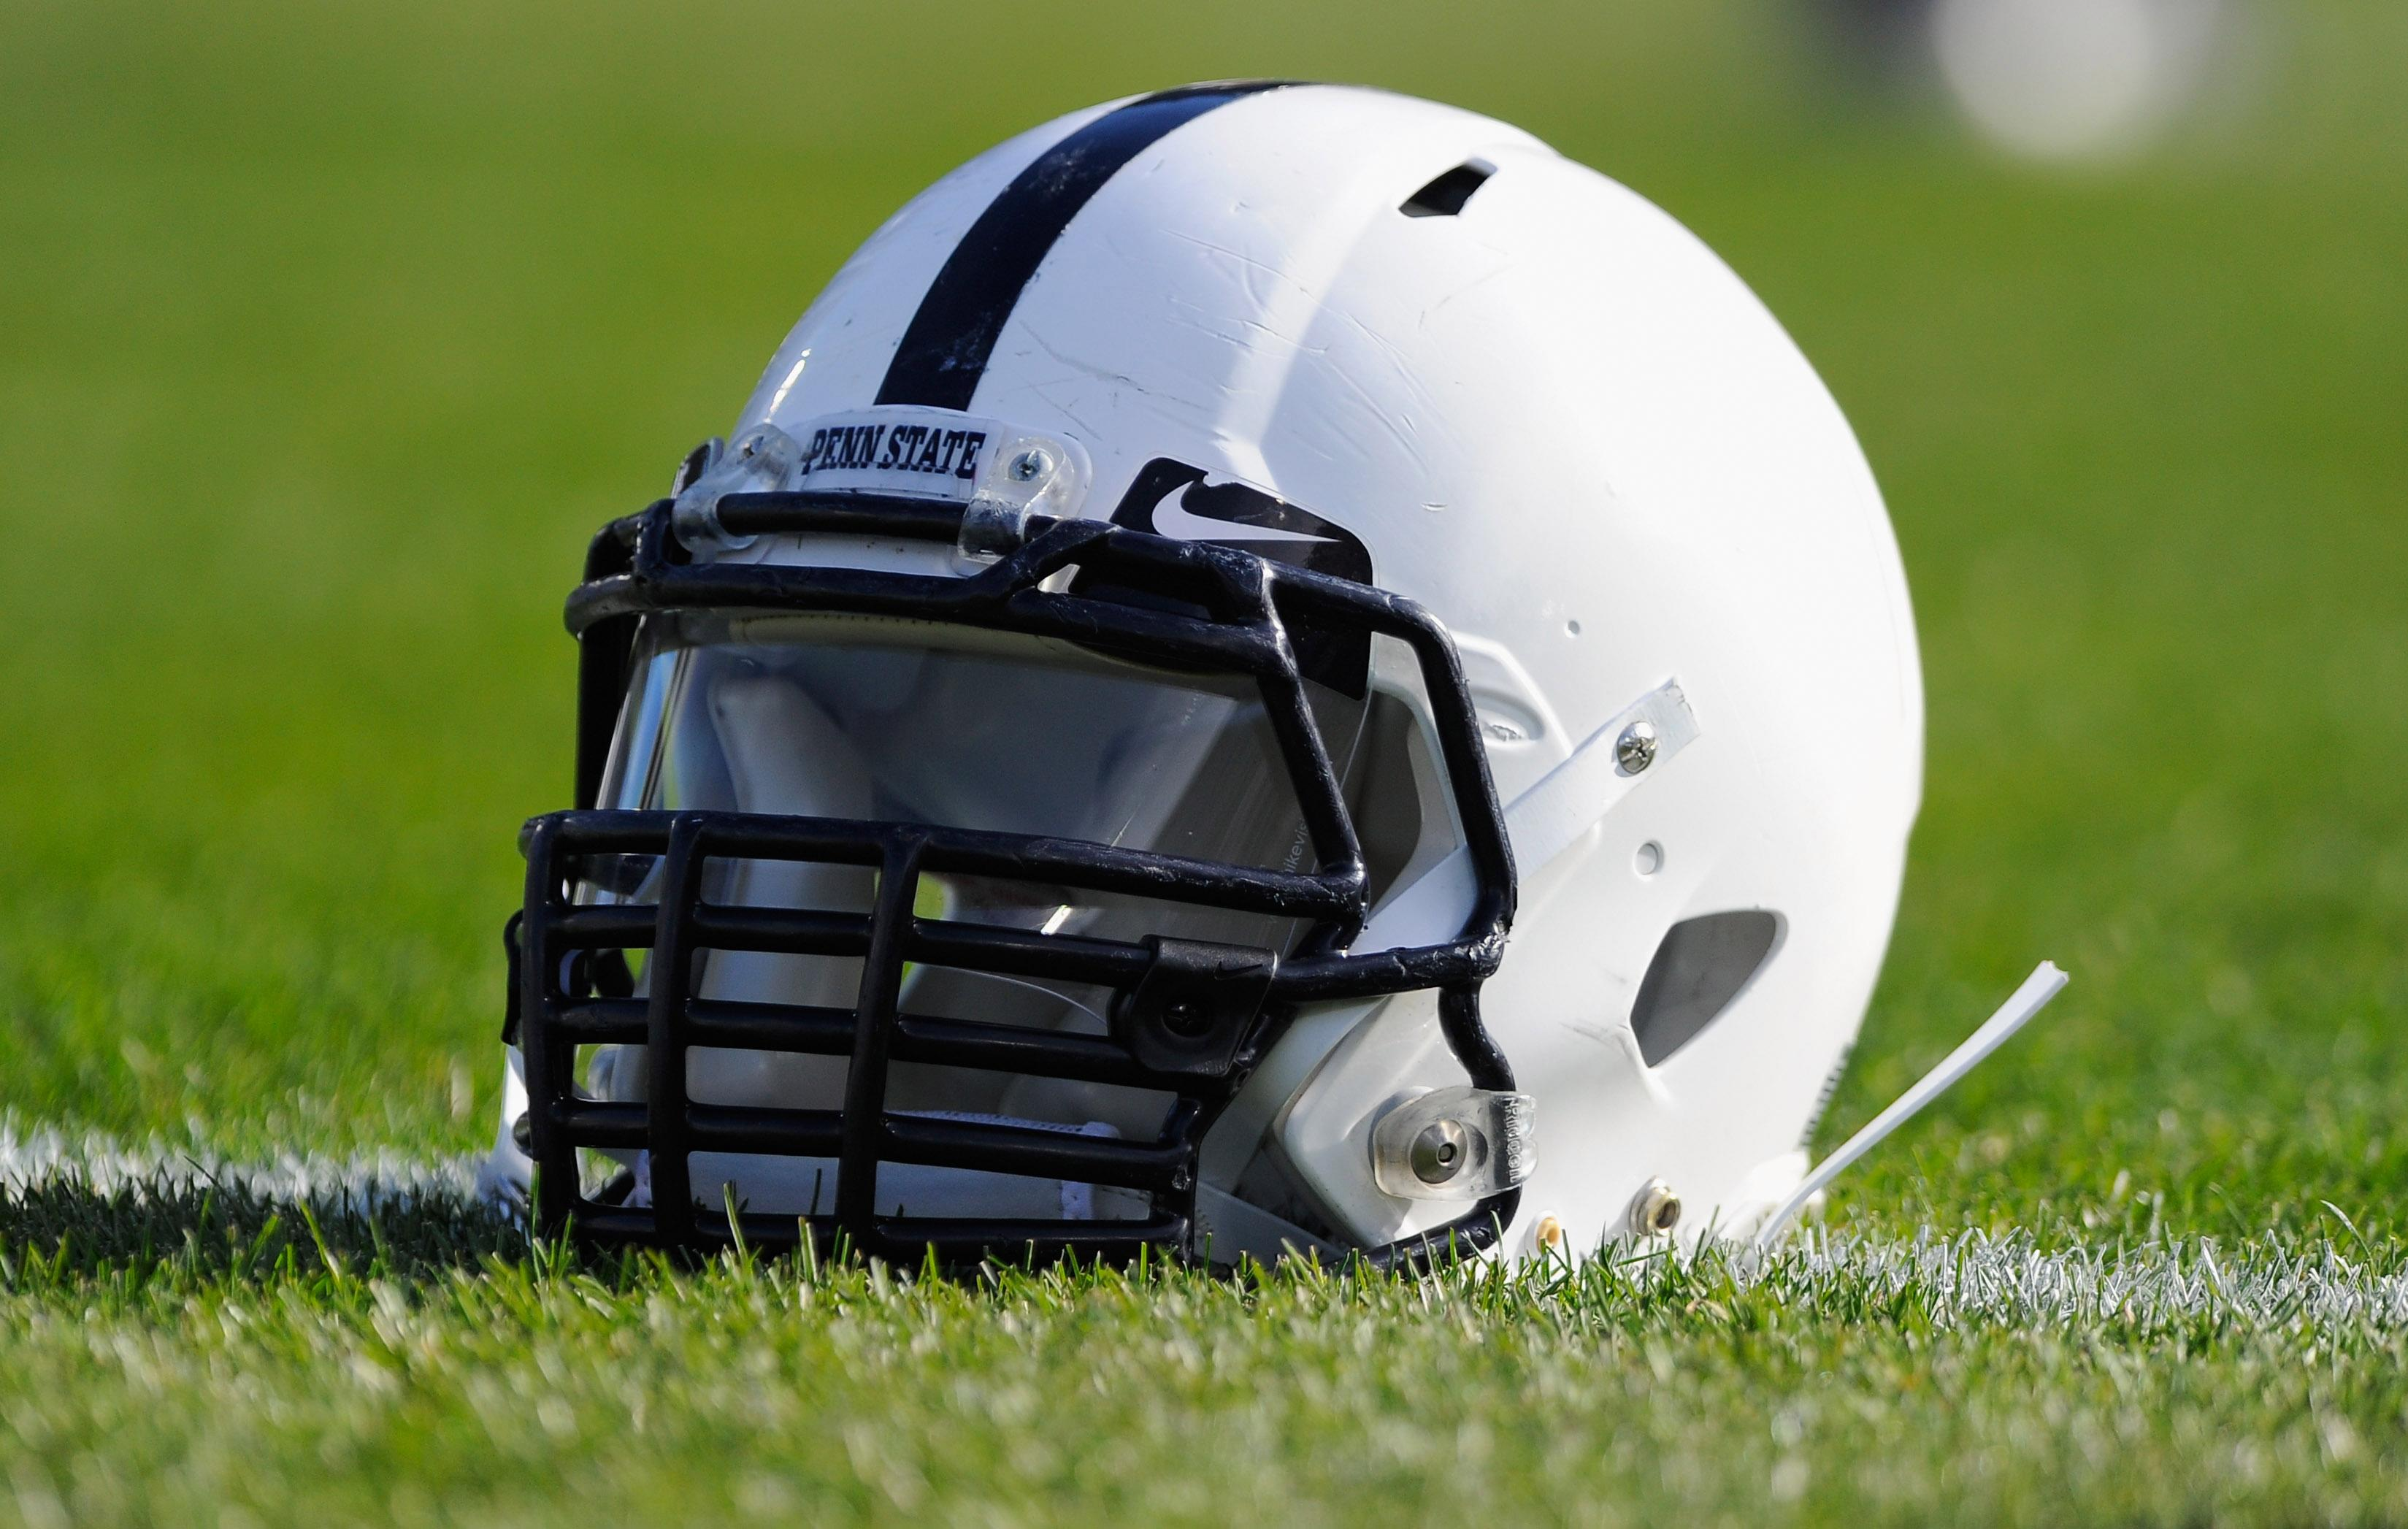 Penn State could provide a nearly $5,000 cost of attendance stipend